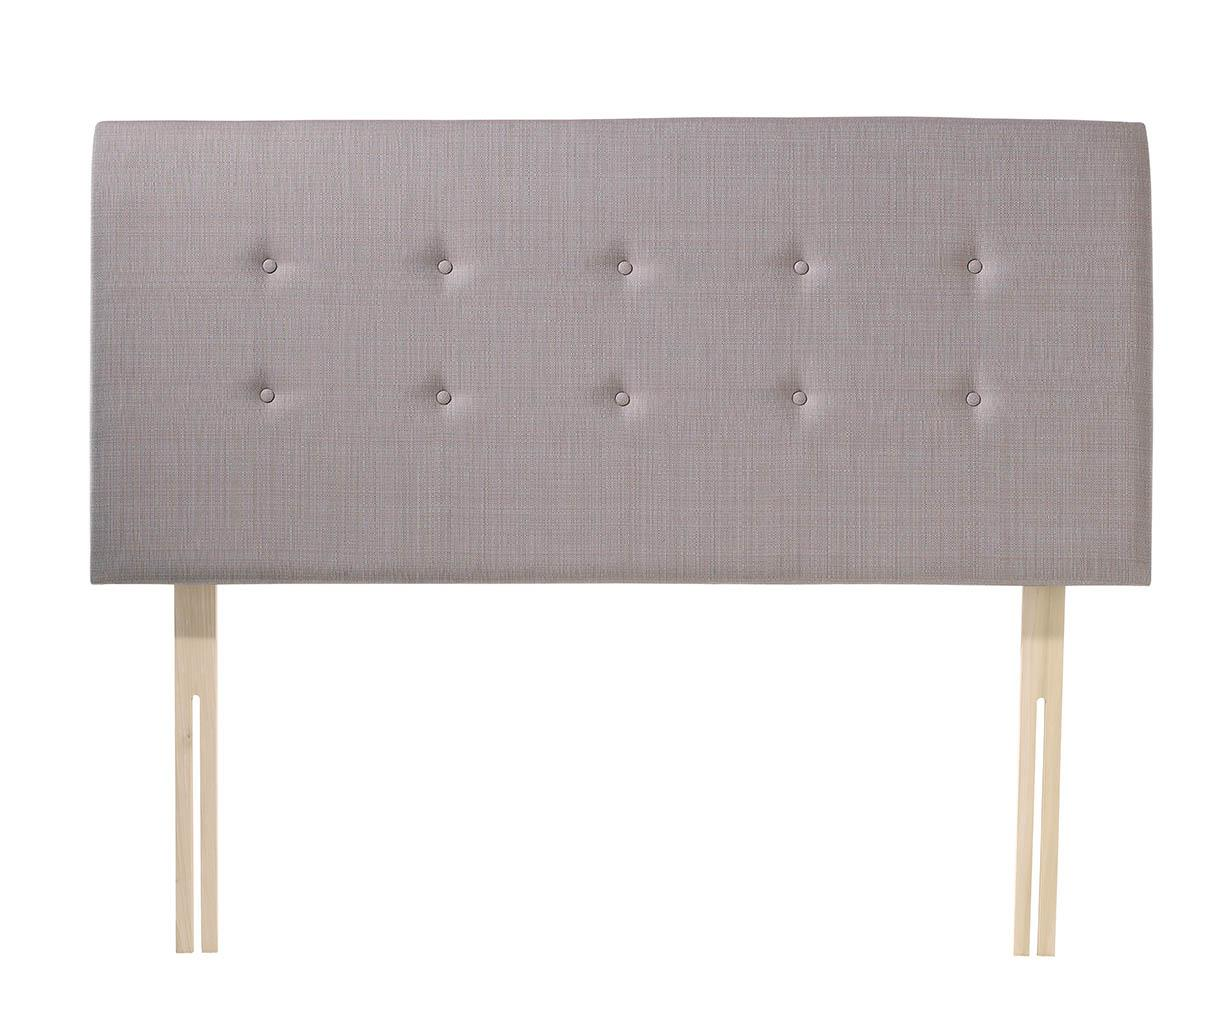 ANDALUCIA - Strut Headboard by Harrison